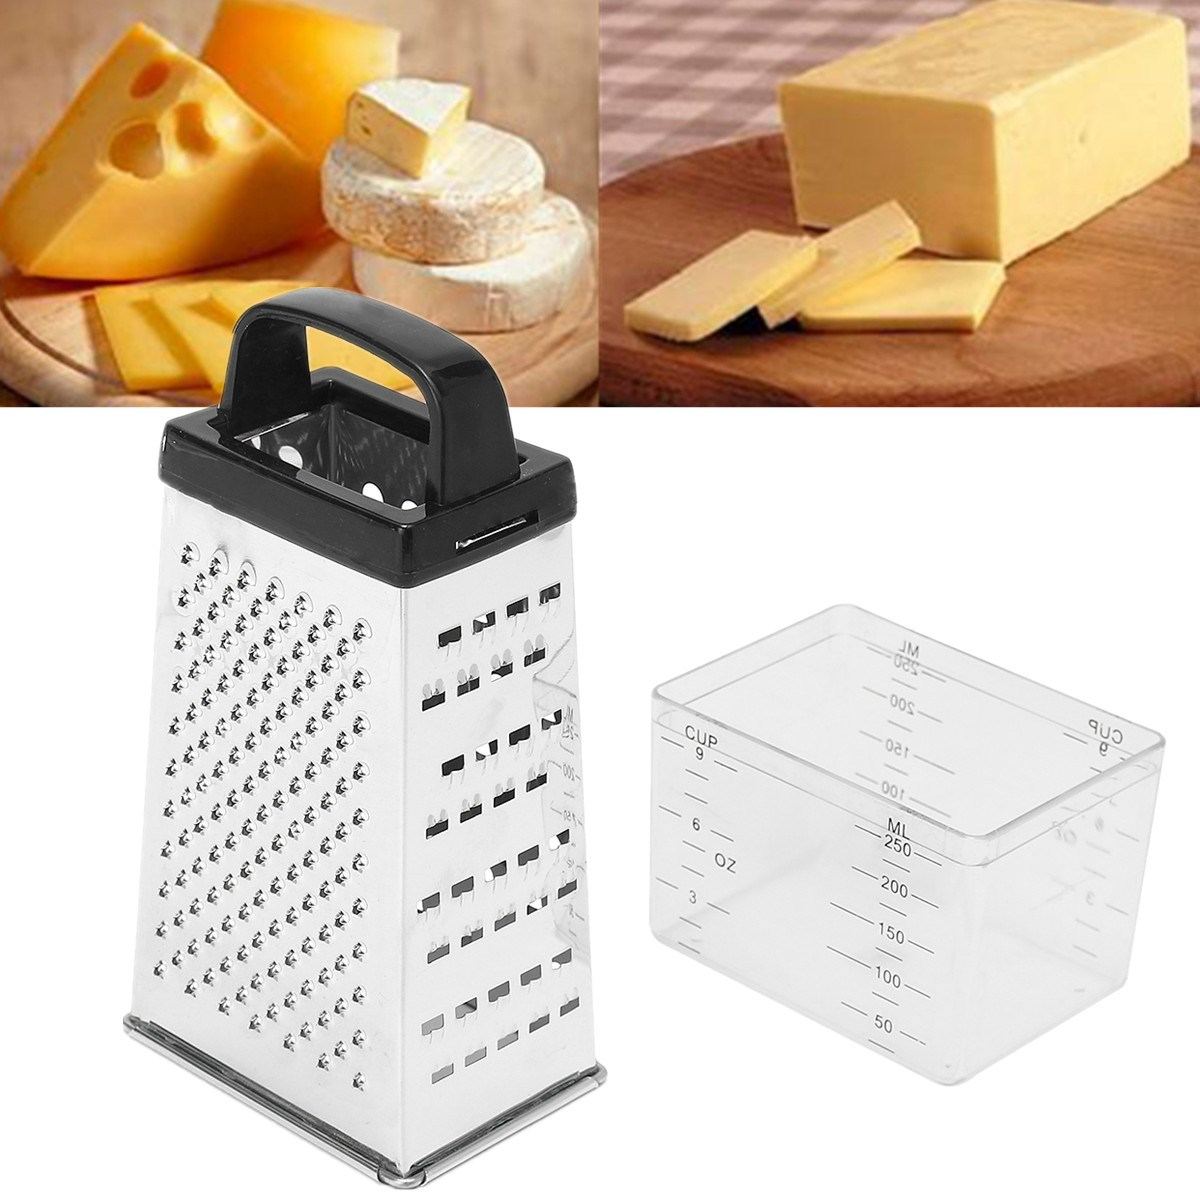 Black White Random 4 Sided Blades Cheese Vegetables Grater Carrot Cucumber Slicer Cutter Box Container Kitchenware Stainless in Cheese Graters from Home Garden